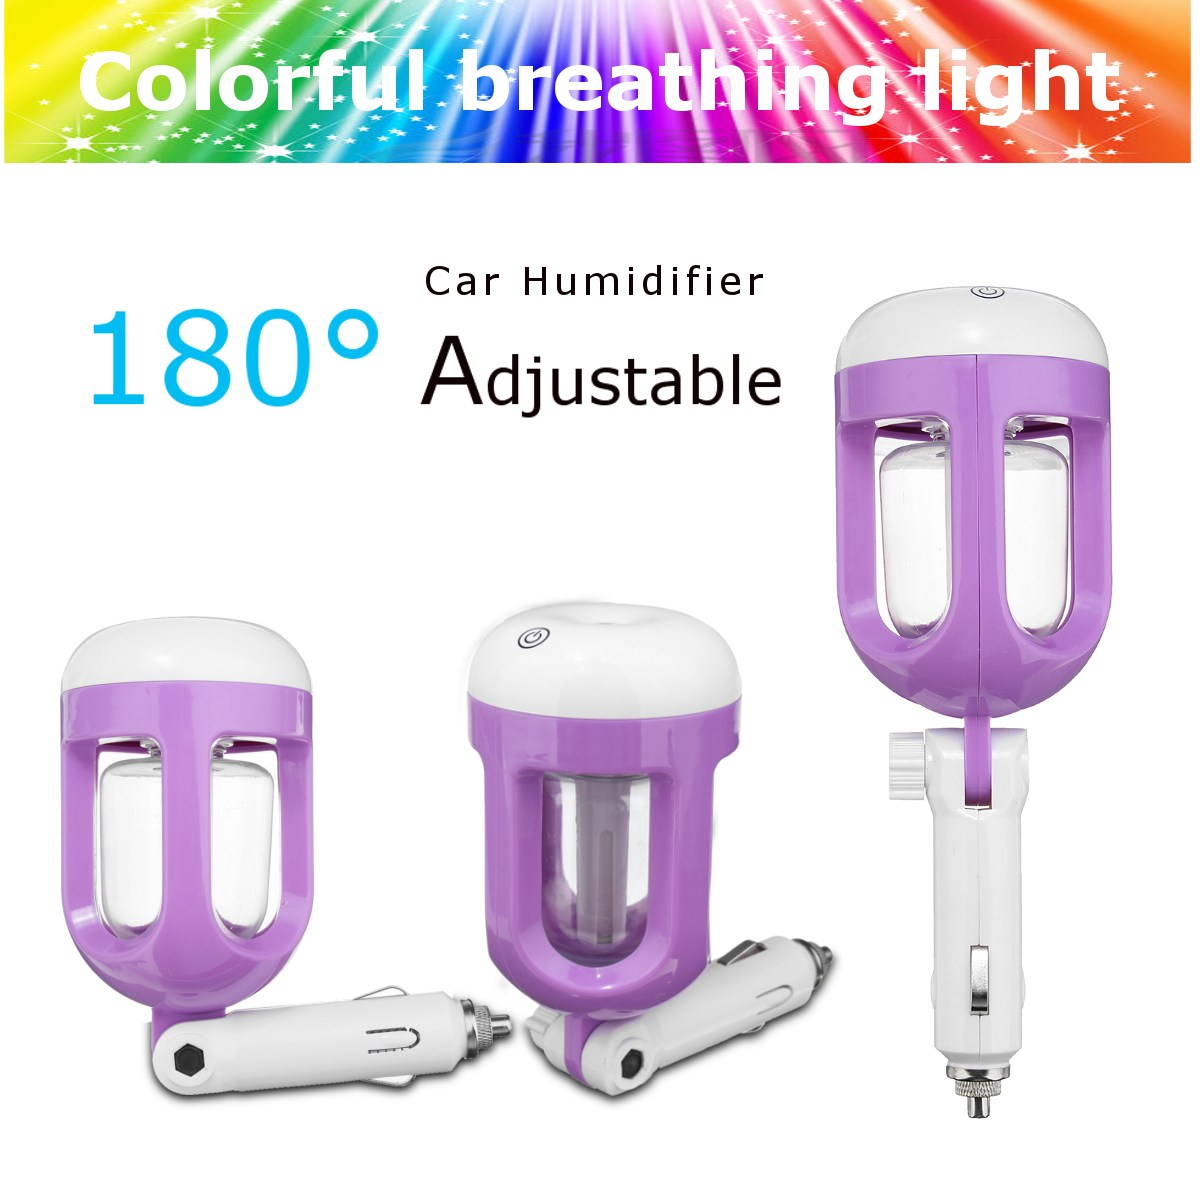 Mini Car Humidifier Air Purifier Freshener Aromatherapy Essential Oil Diffuser Household Humidifiers Best Gift For Women Men